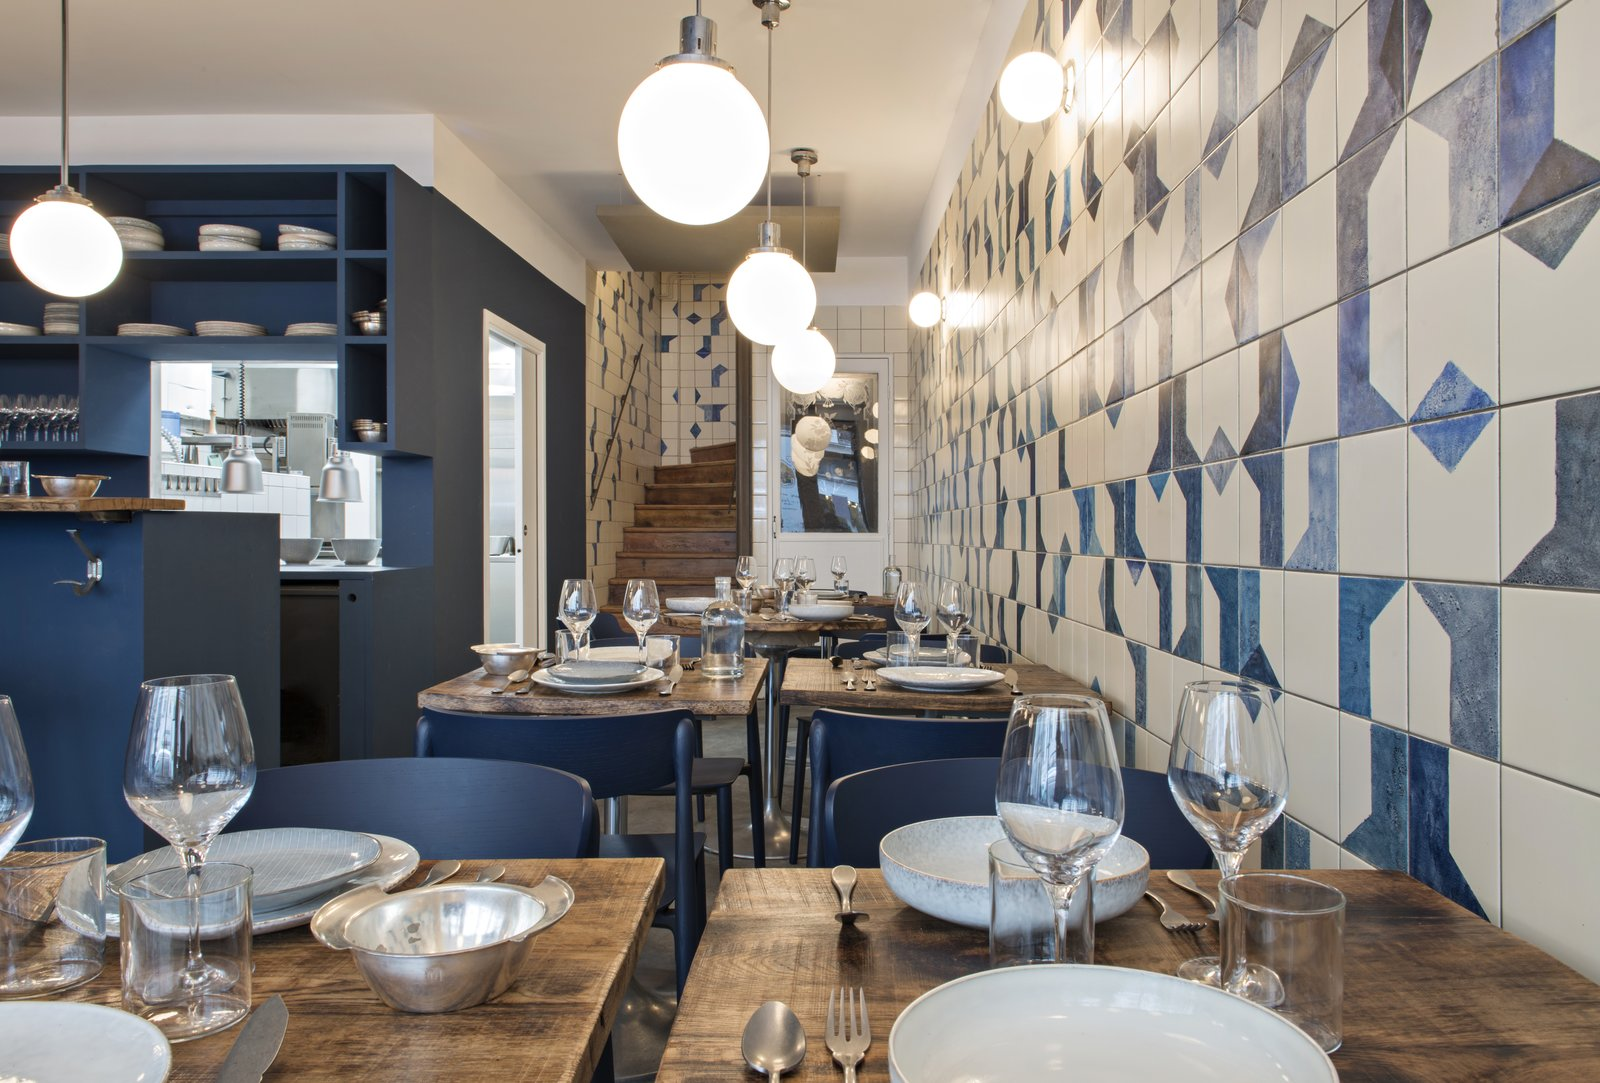 The hand-painted ceramic tile wraps along the wall and continues up the stairwell. Named after Belle Maison, after the owners' favorite beach, the restaurant is focused on seafood dishes.  Photo 5 of 6 in A Parisian Seafood Restaurant, Swimming in Shades of Blue